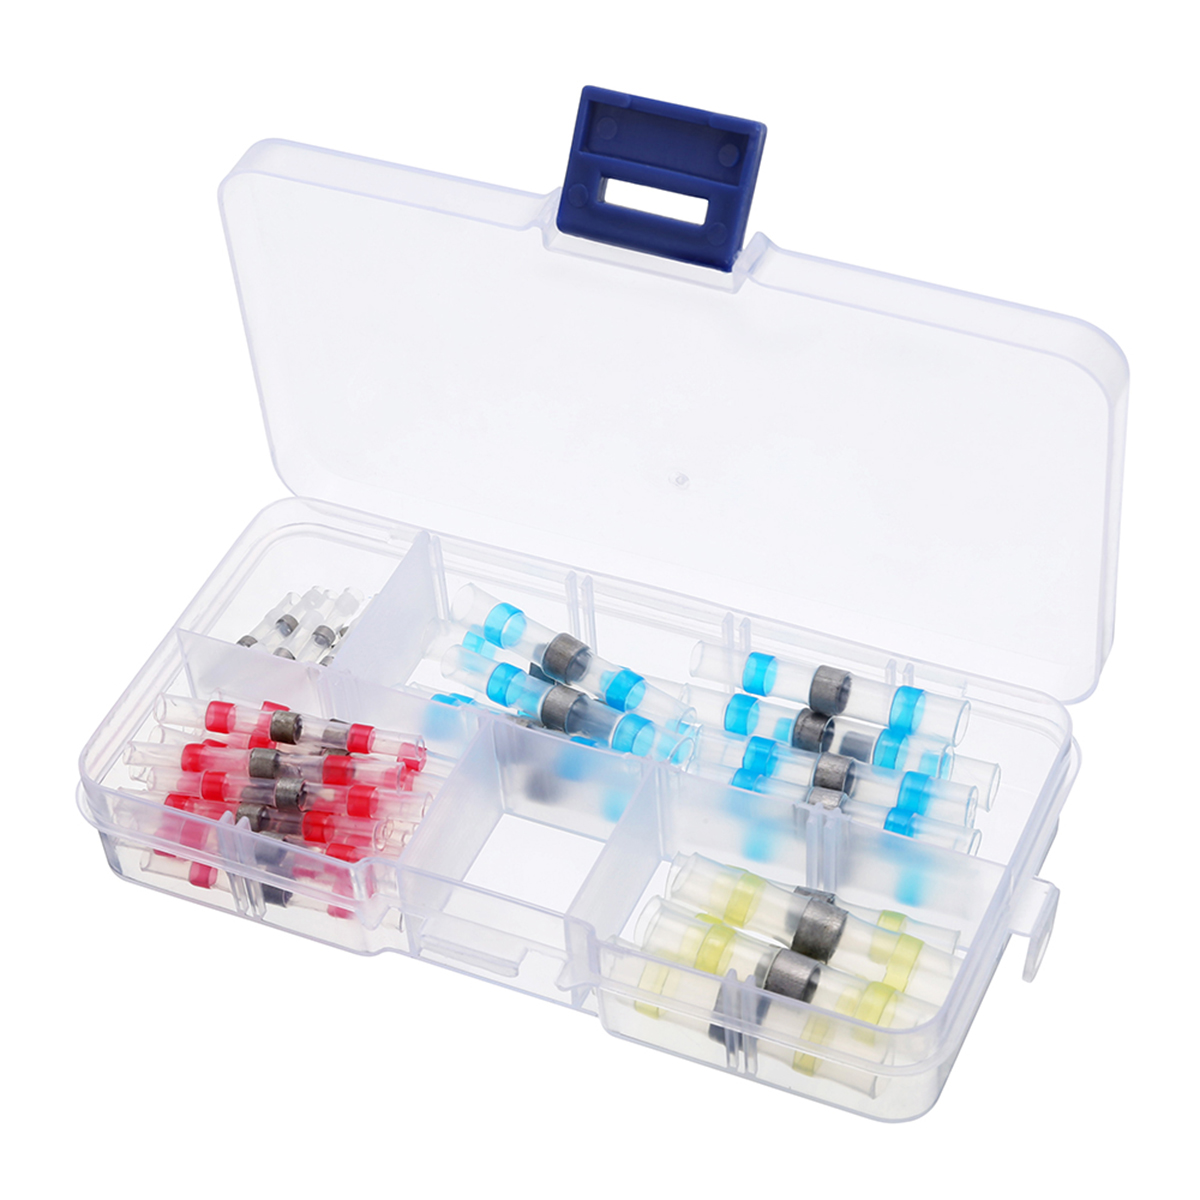 100Pcs Heat Shrink Solder Sleeves with Case Solder Heat Shrink Sleeves Splice Butt Connector Electrical Wire Crimp Terminals